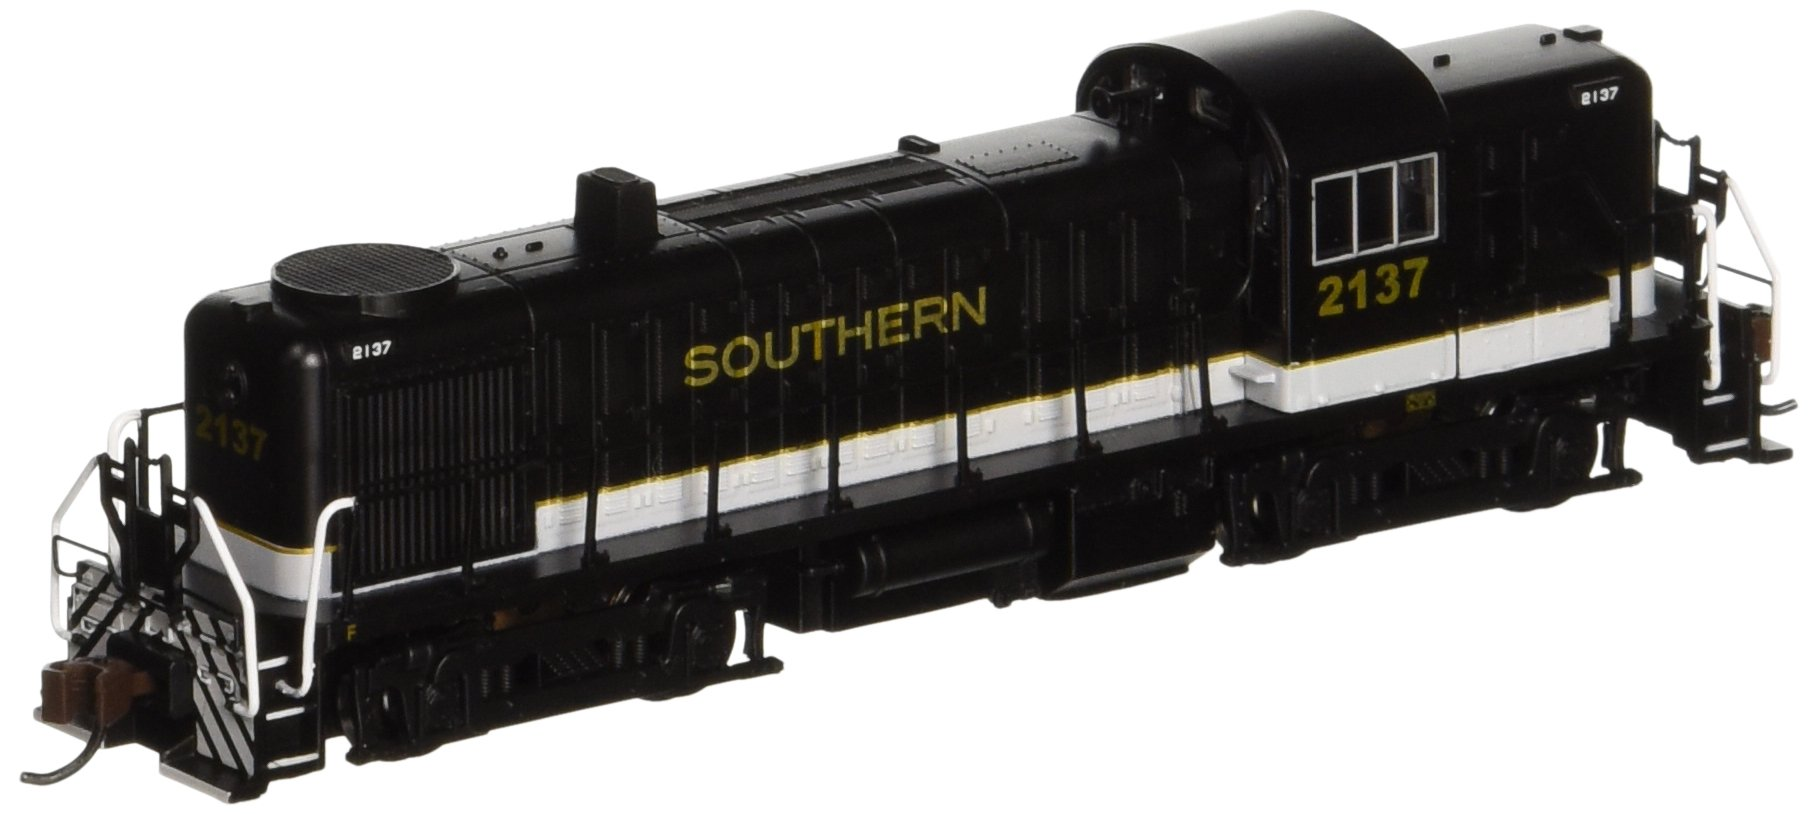 Bachmann Industries Alco RS-3 Locomotive Southern 2137 (Black, Grey and Dulux Gold) N Scale - DCC on Board